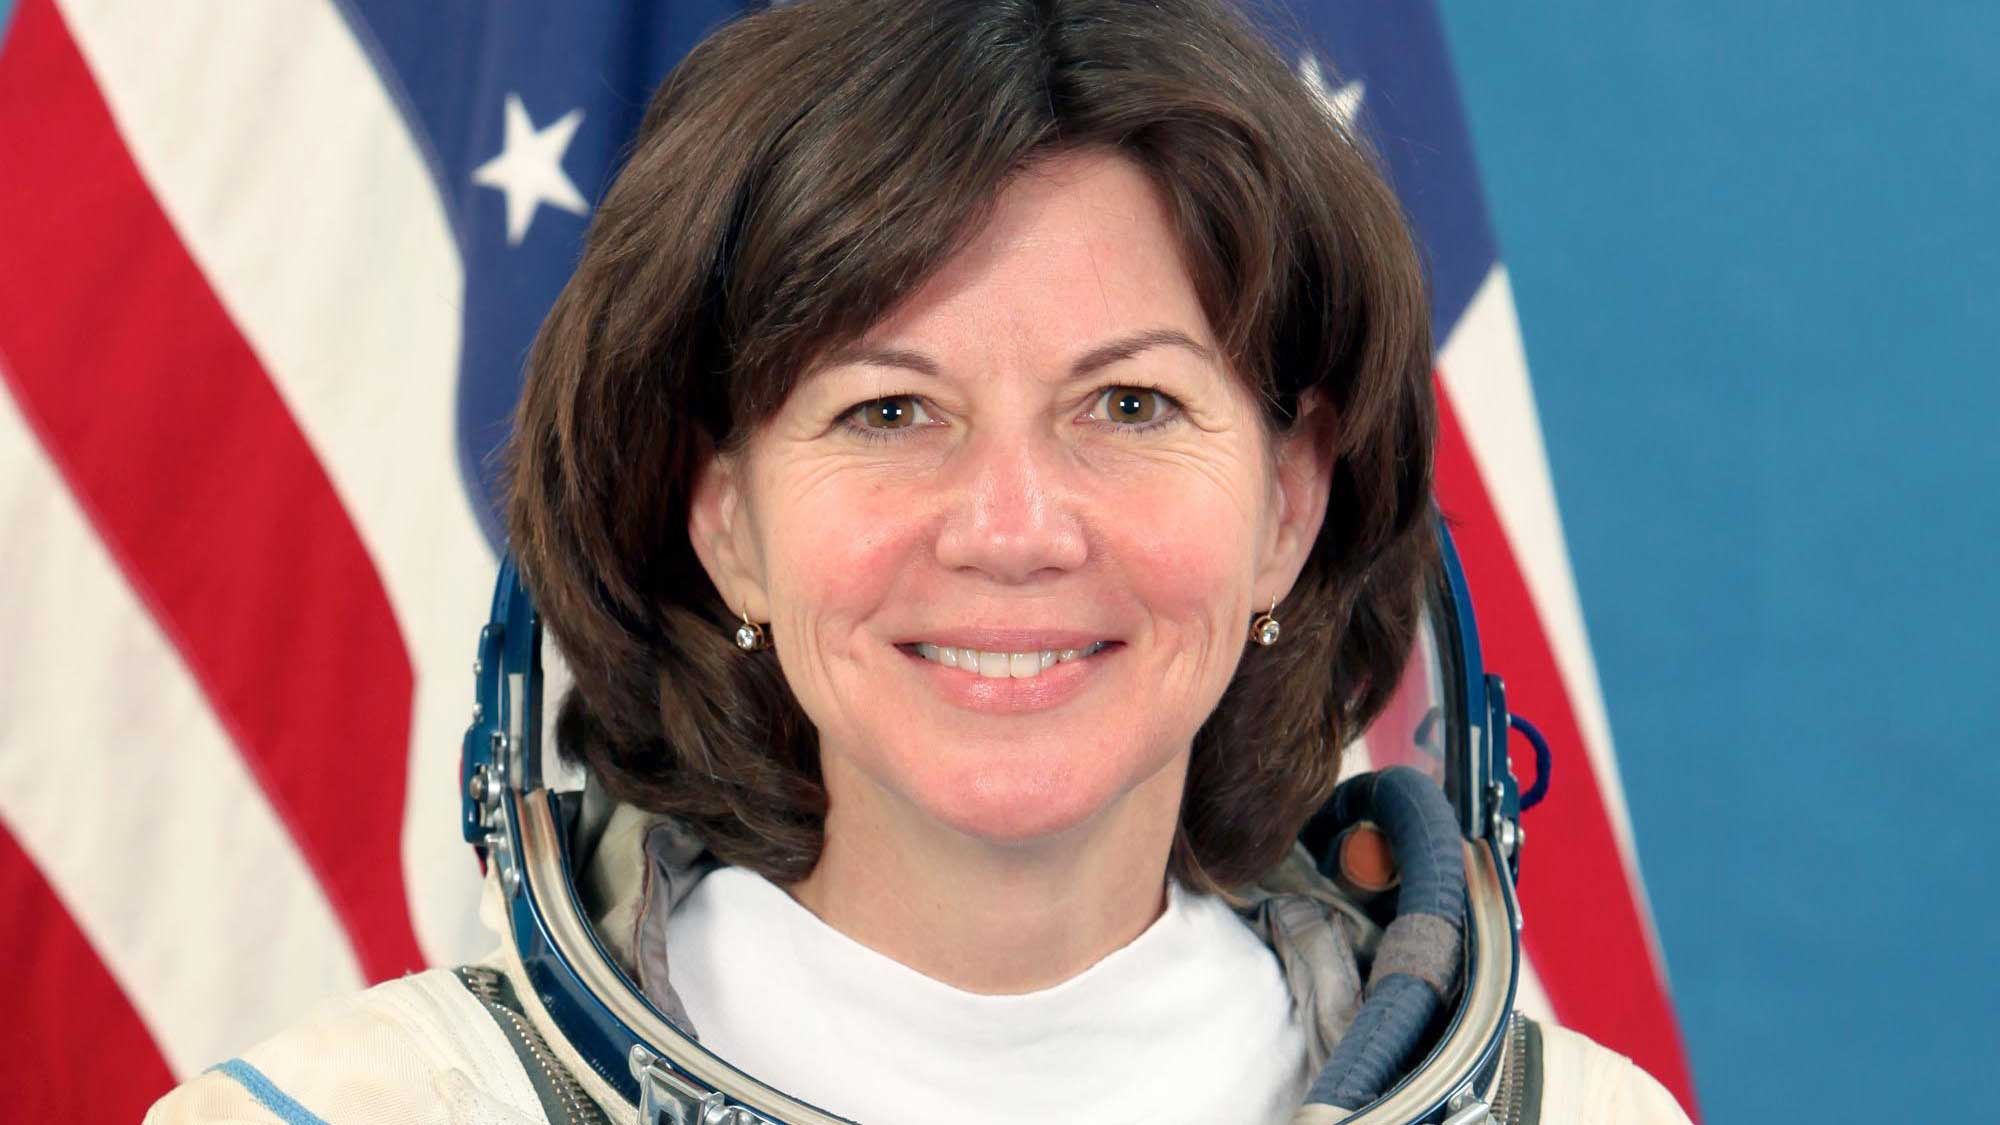 Cady Coleman in her astronaut suit